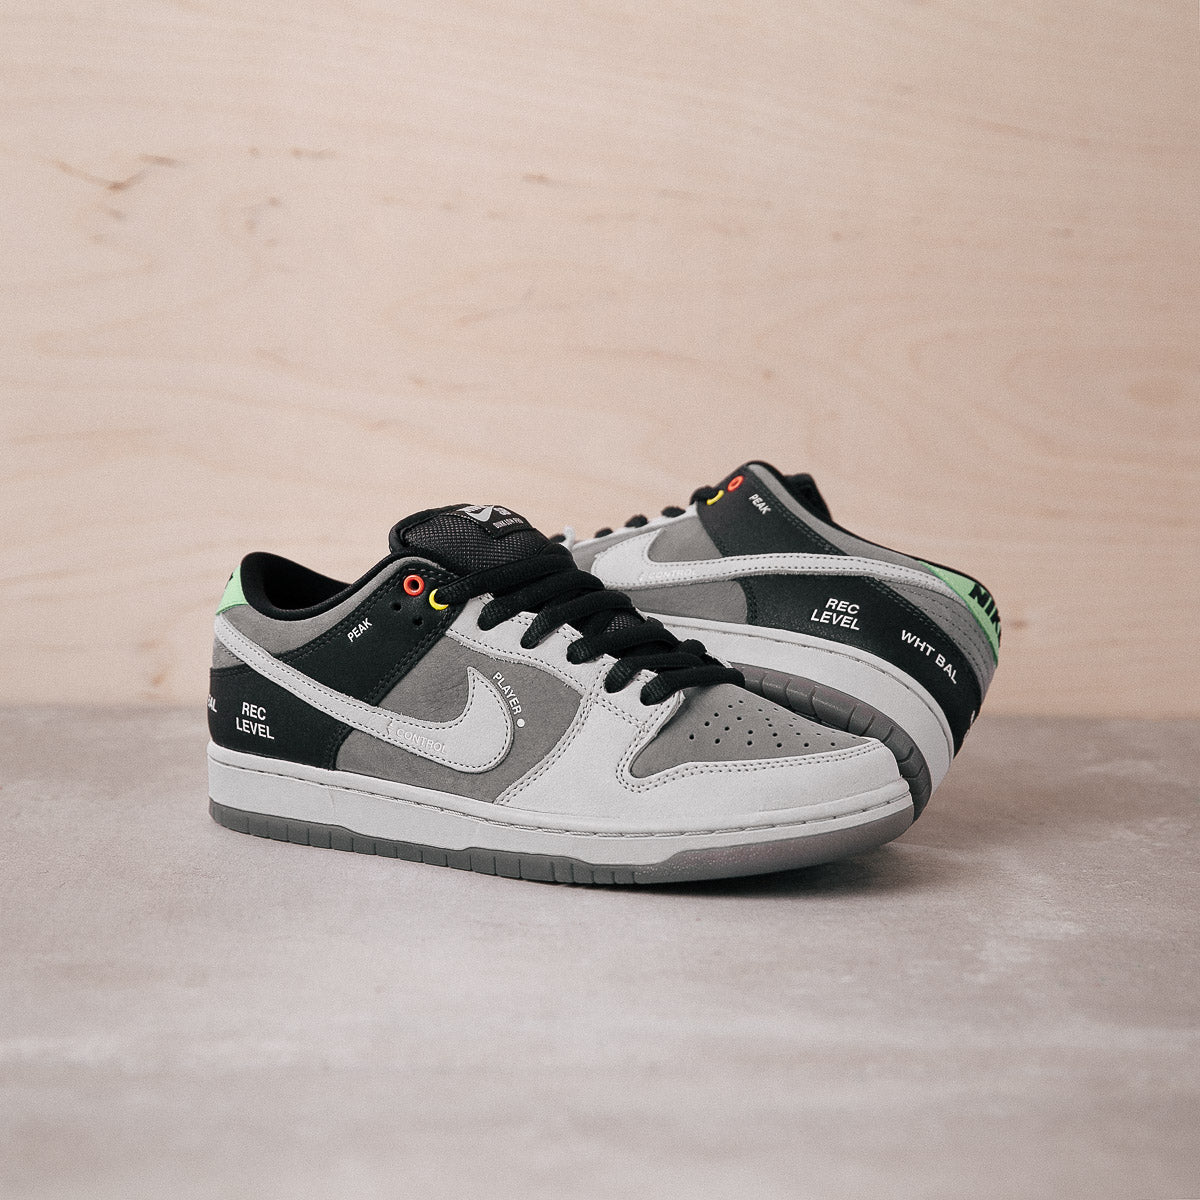 Nike SB Orange Label 'VX1000' Dunk Low Pro | Flatspot